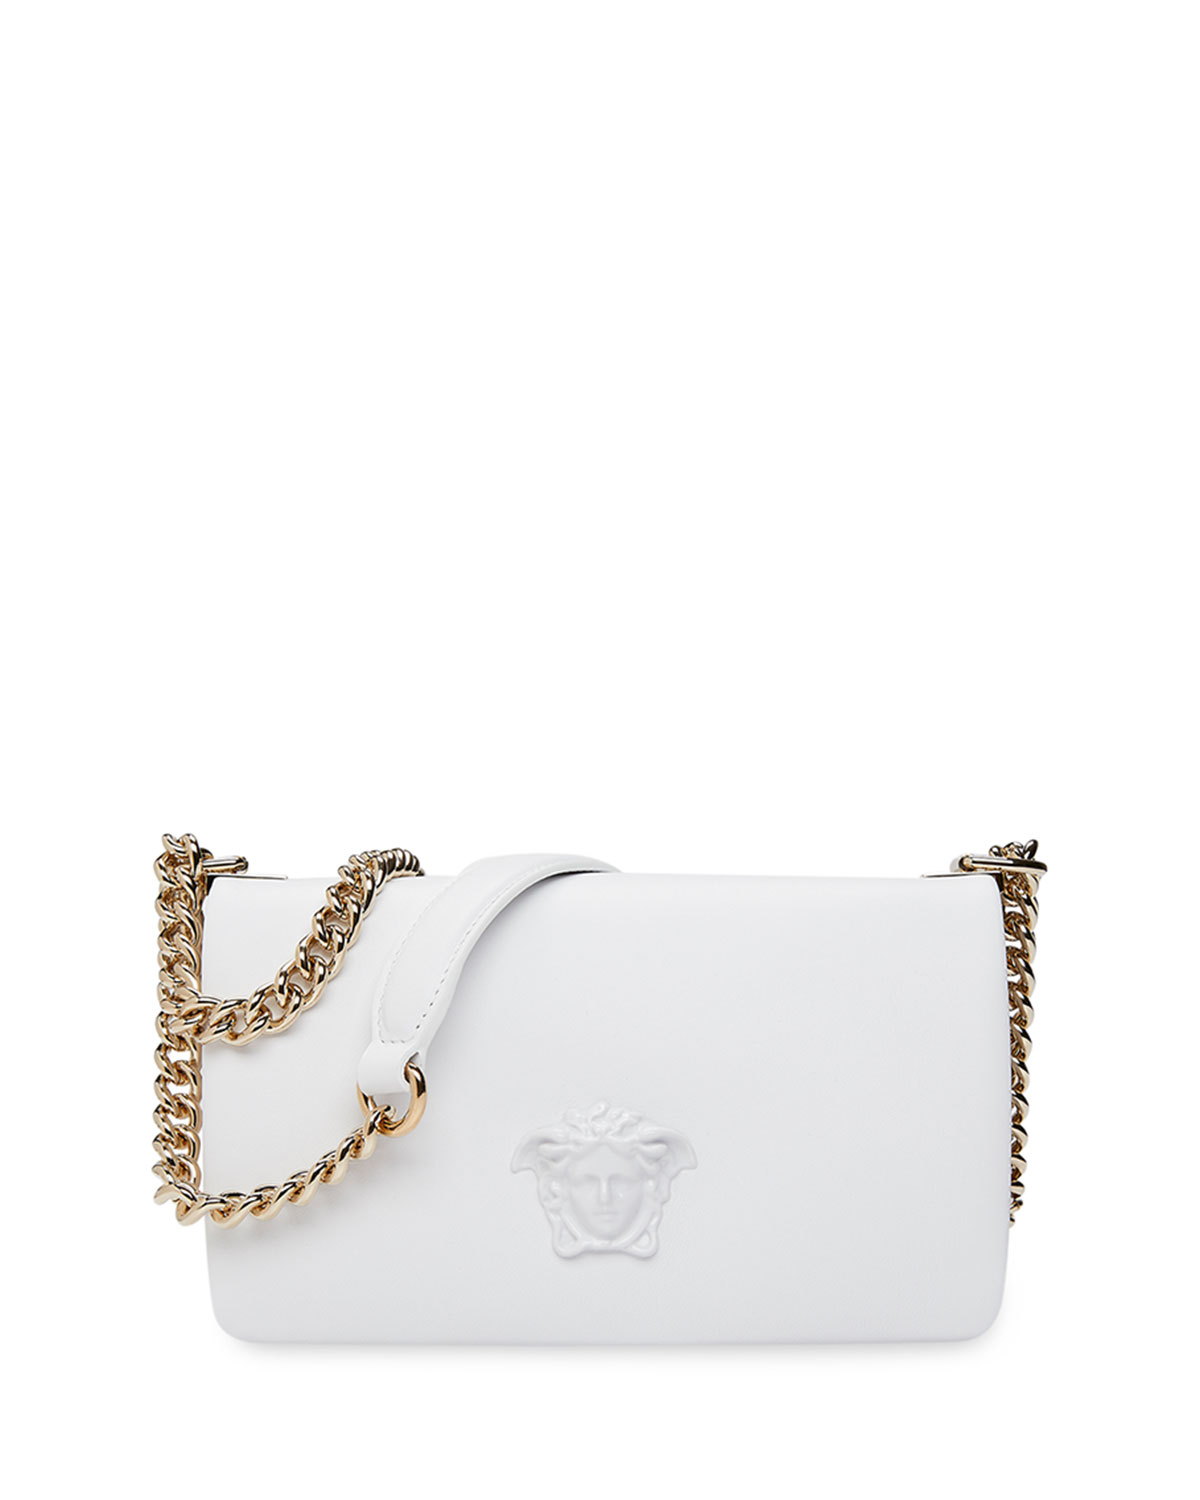 8edb0dd41fb8 Versace Lamb Leather Shoulder Bag with Medusa Head